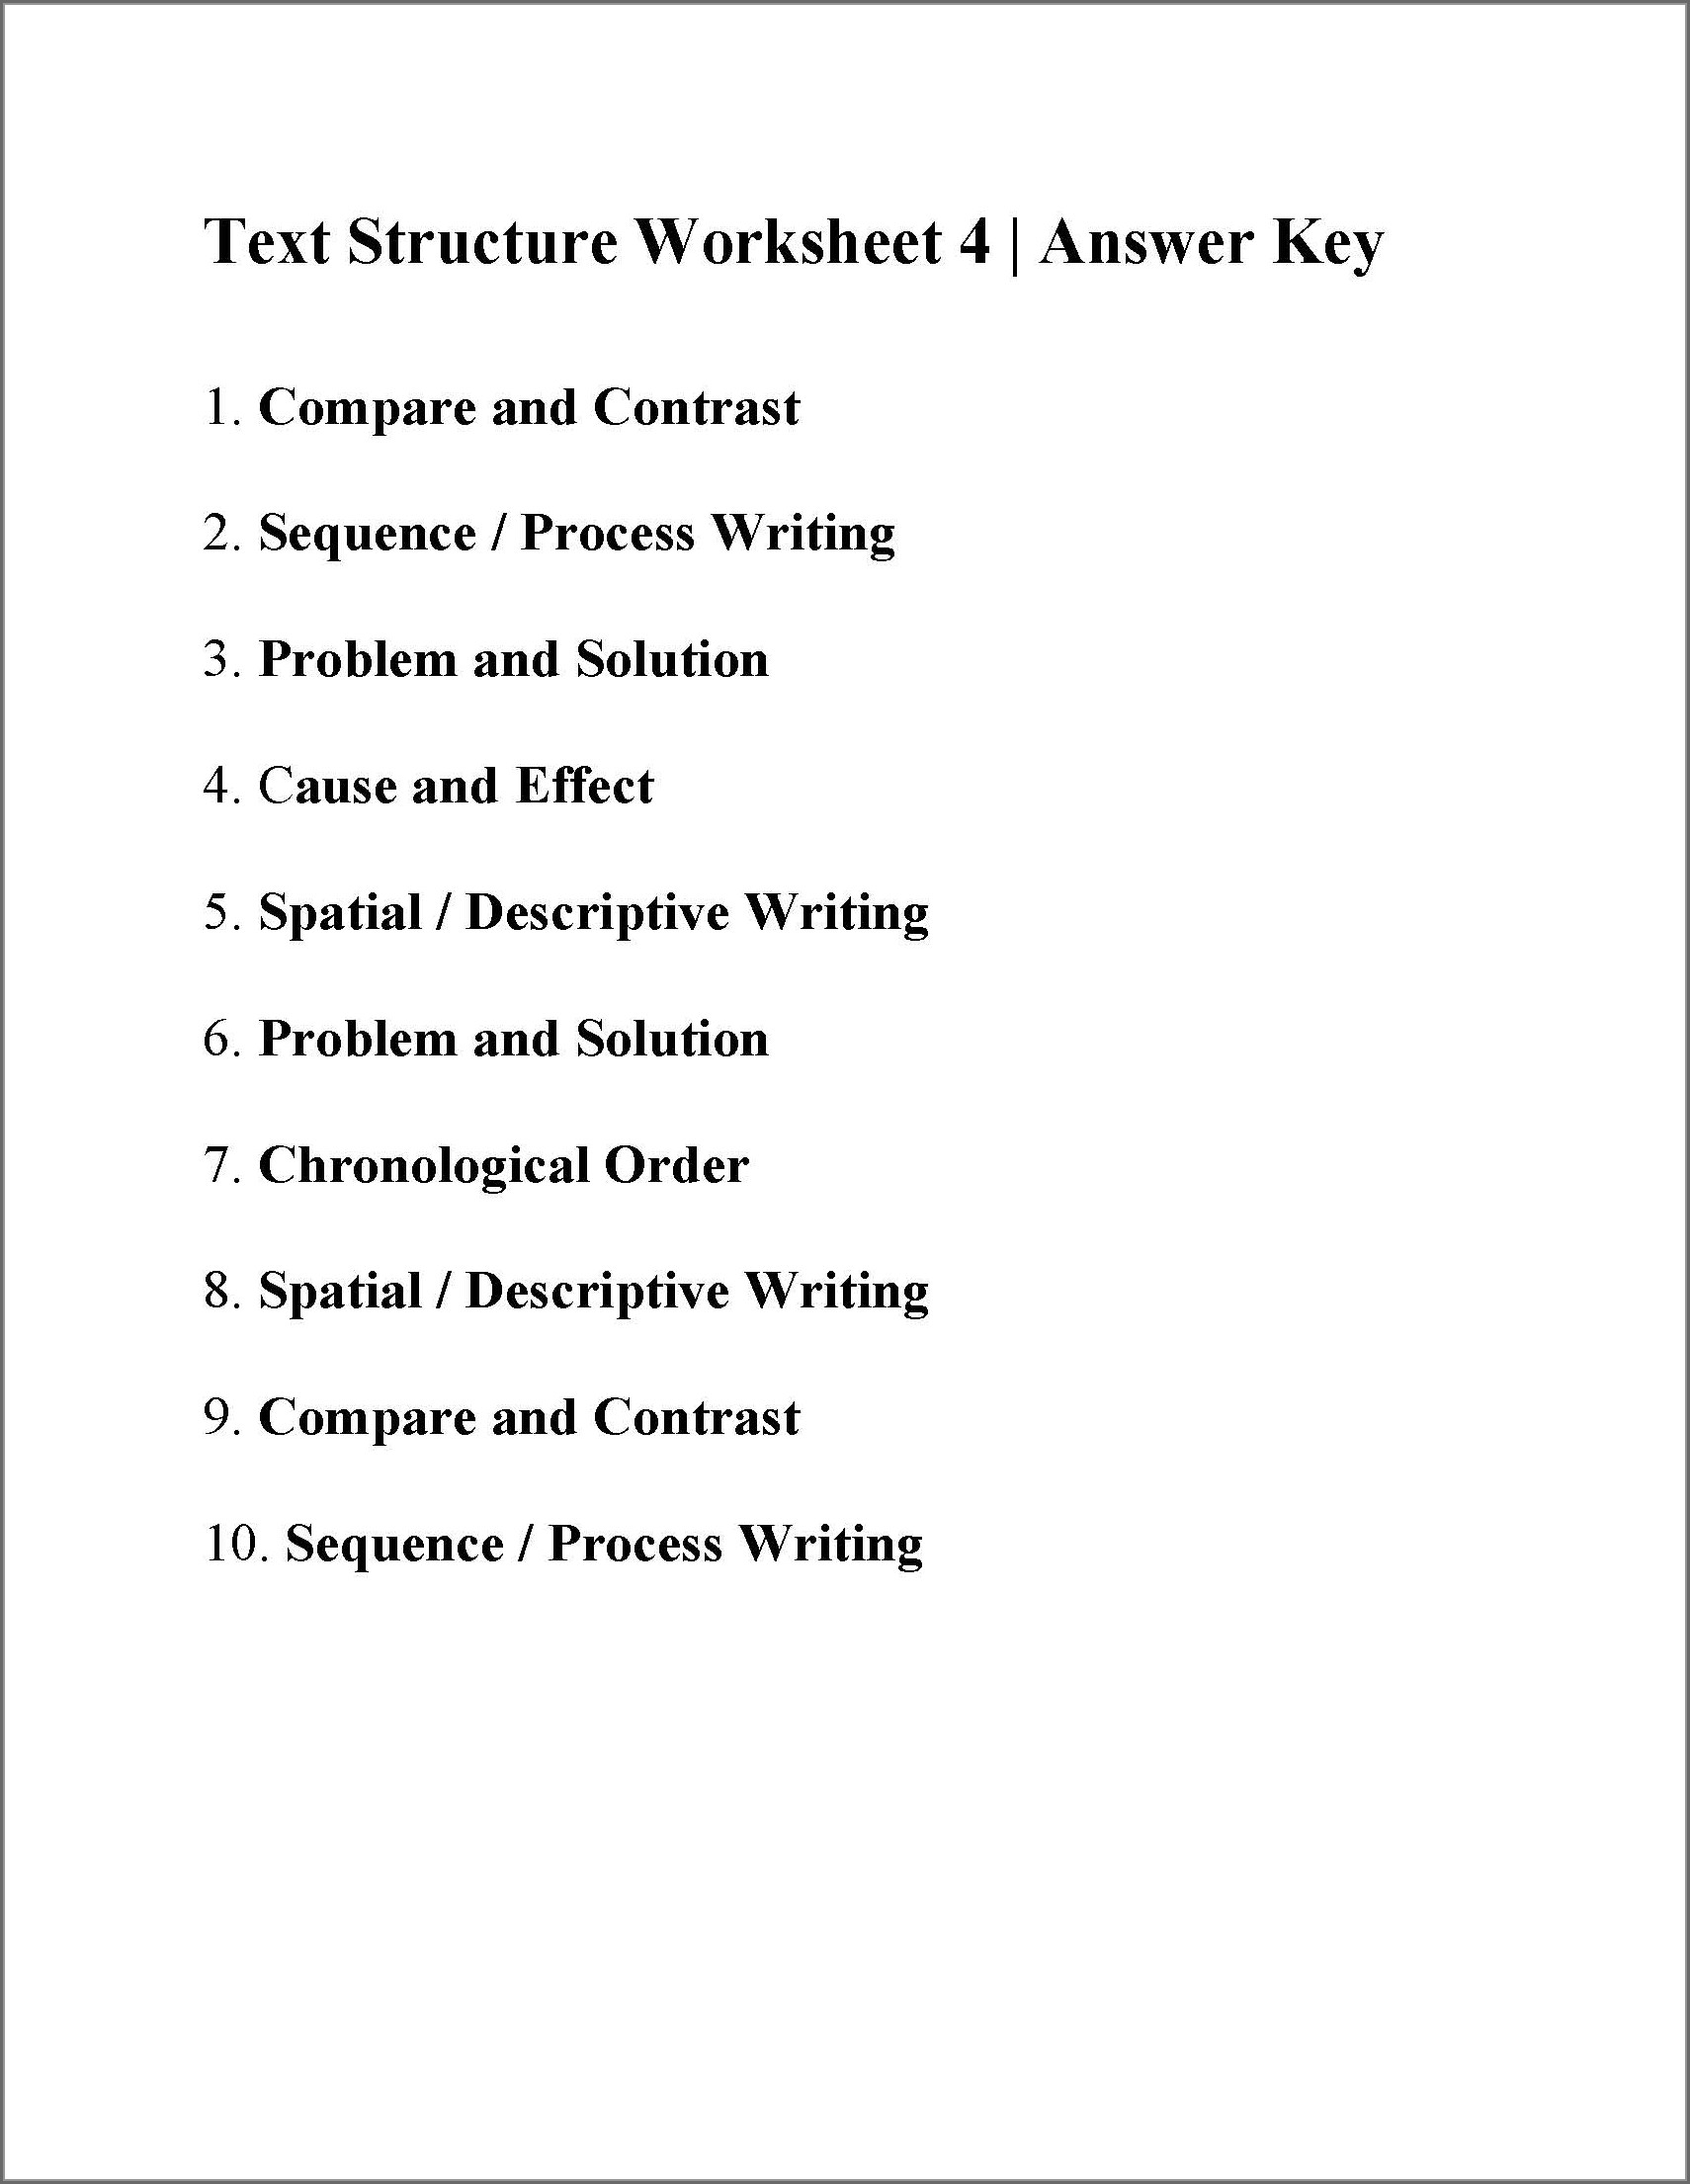 Text Structure Worksheets 5th Grade Pdf